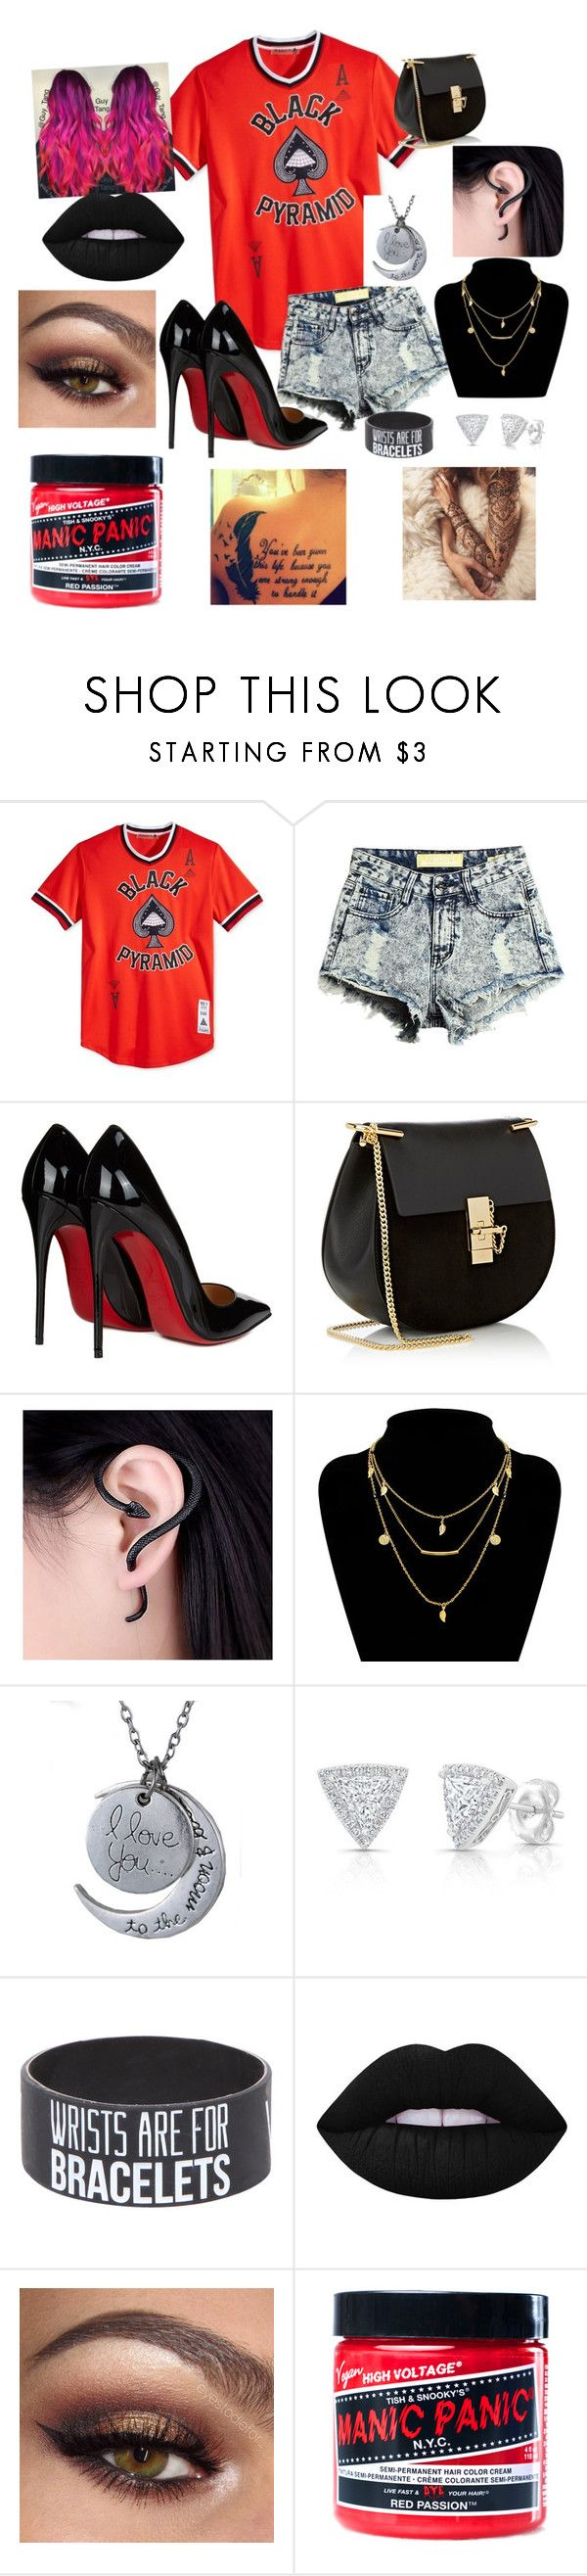 """I love chris browns black pyramid clothing line"" by wwenaenae on Polyvore featuring Black Pyramid, Christian Louboutin, Chloé, Lime Crime and Manic Panic NYC"